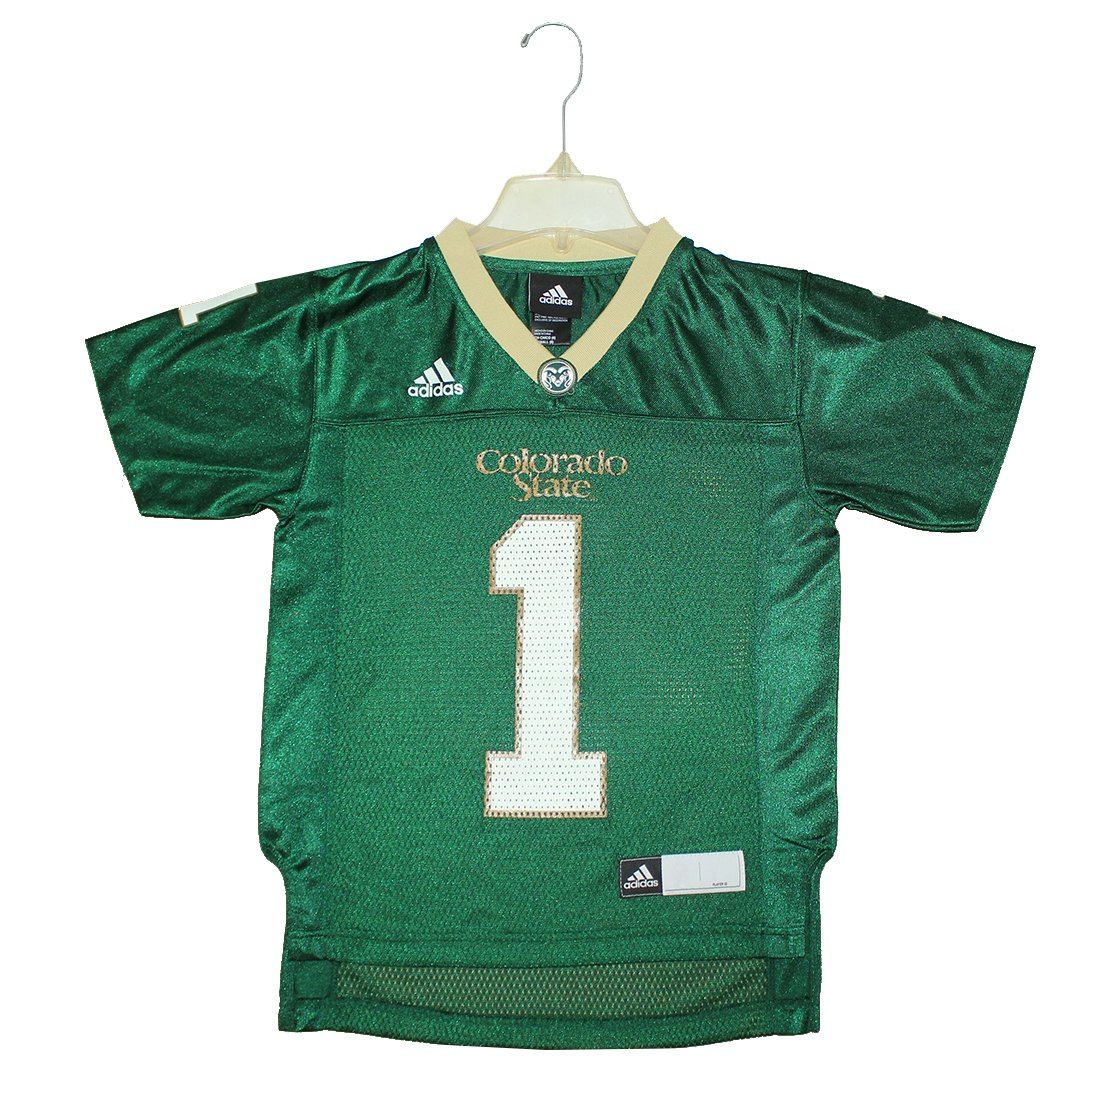 6b0f537f51a Amazon.com   Youth NCAA - COLORADO STATE RAMS  1 Short Sleeve Jersey S(8)  Green   Sports   Outdoors